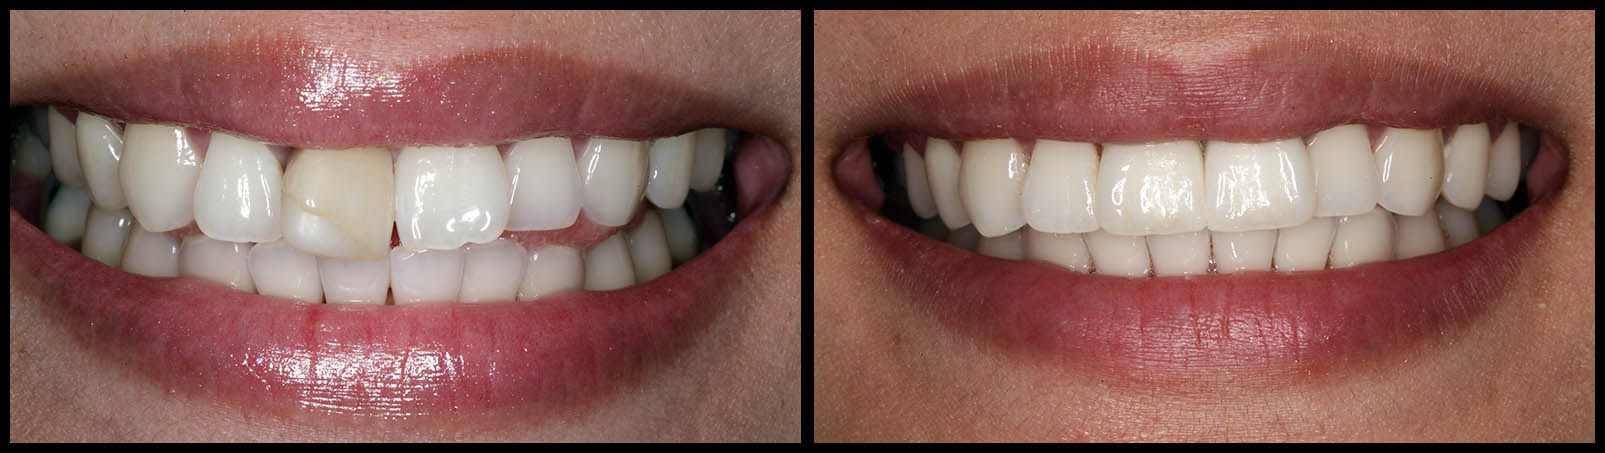 Dental Implants And Crowns | Cosmetic Dentistry Before And After | Bunker Hill Dentistry | Houston, TX